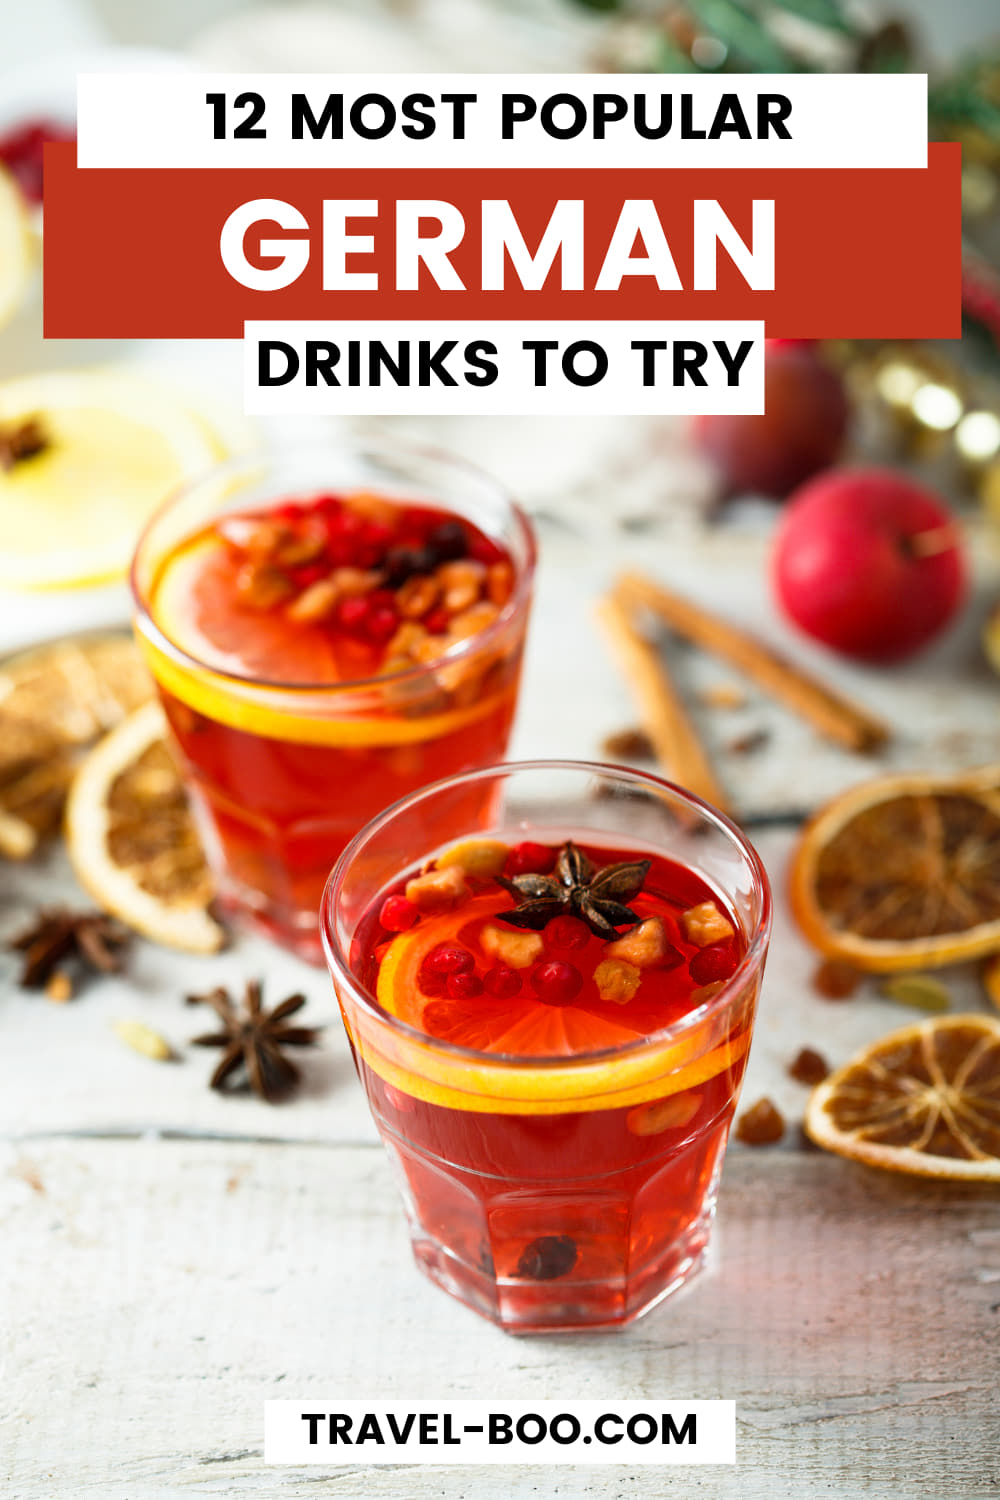 12 Most Popular German Drinks to try in Germany! Germany Travel, German Travel Tips, Germany Travel Guide, Germany Itinerary, Drinks from Germay, German Food and Drinks.